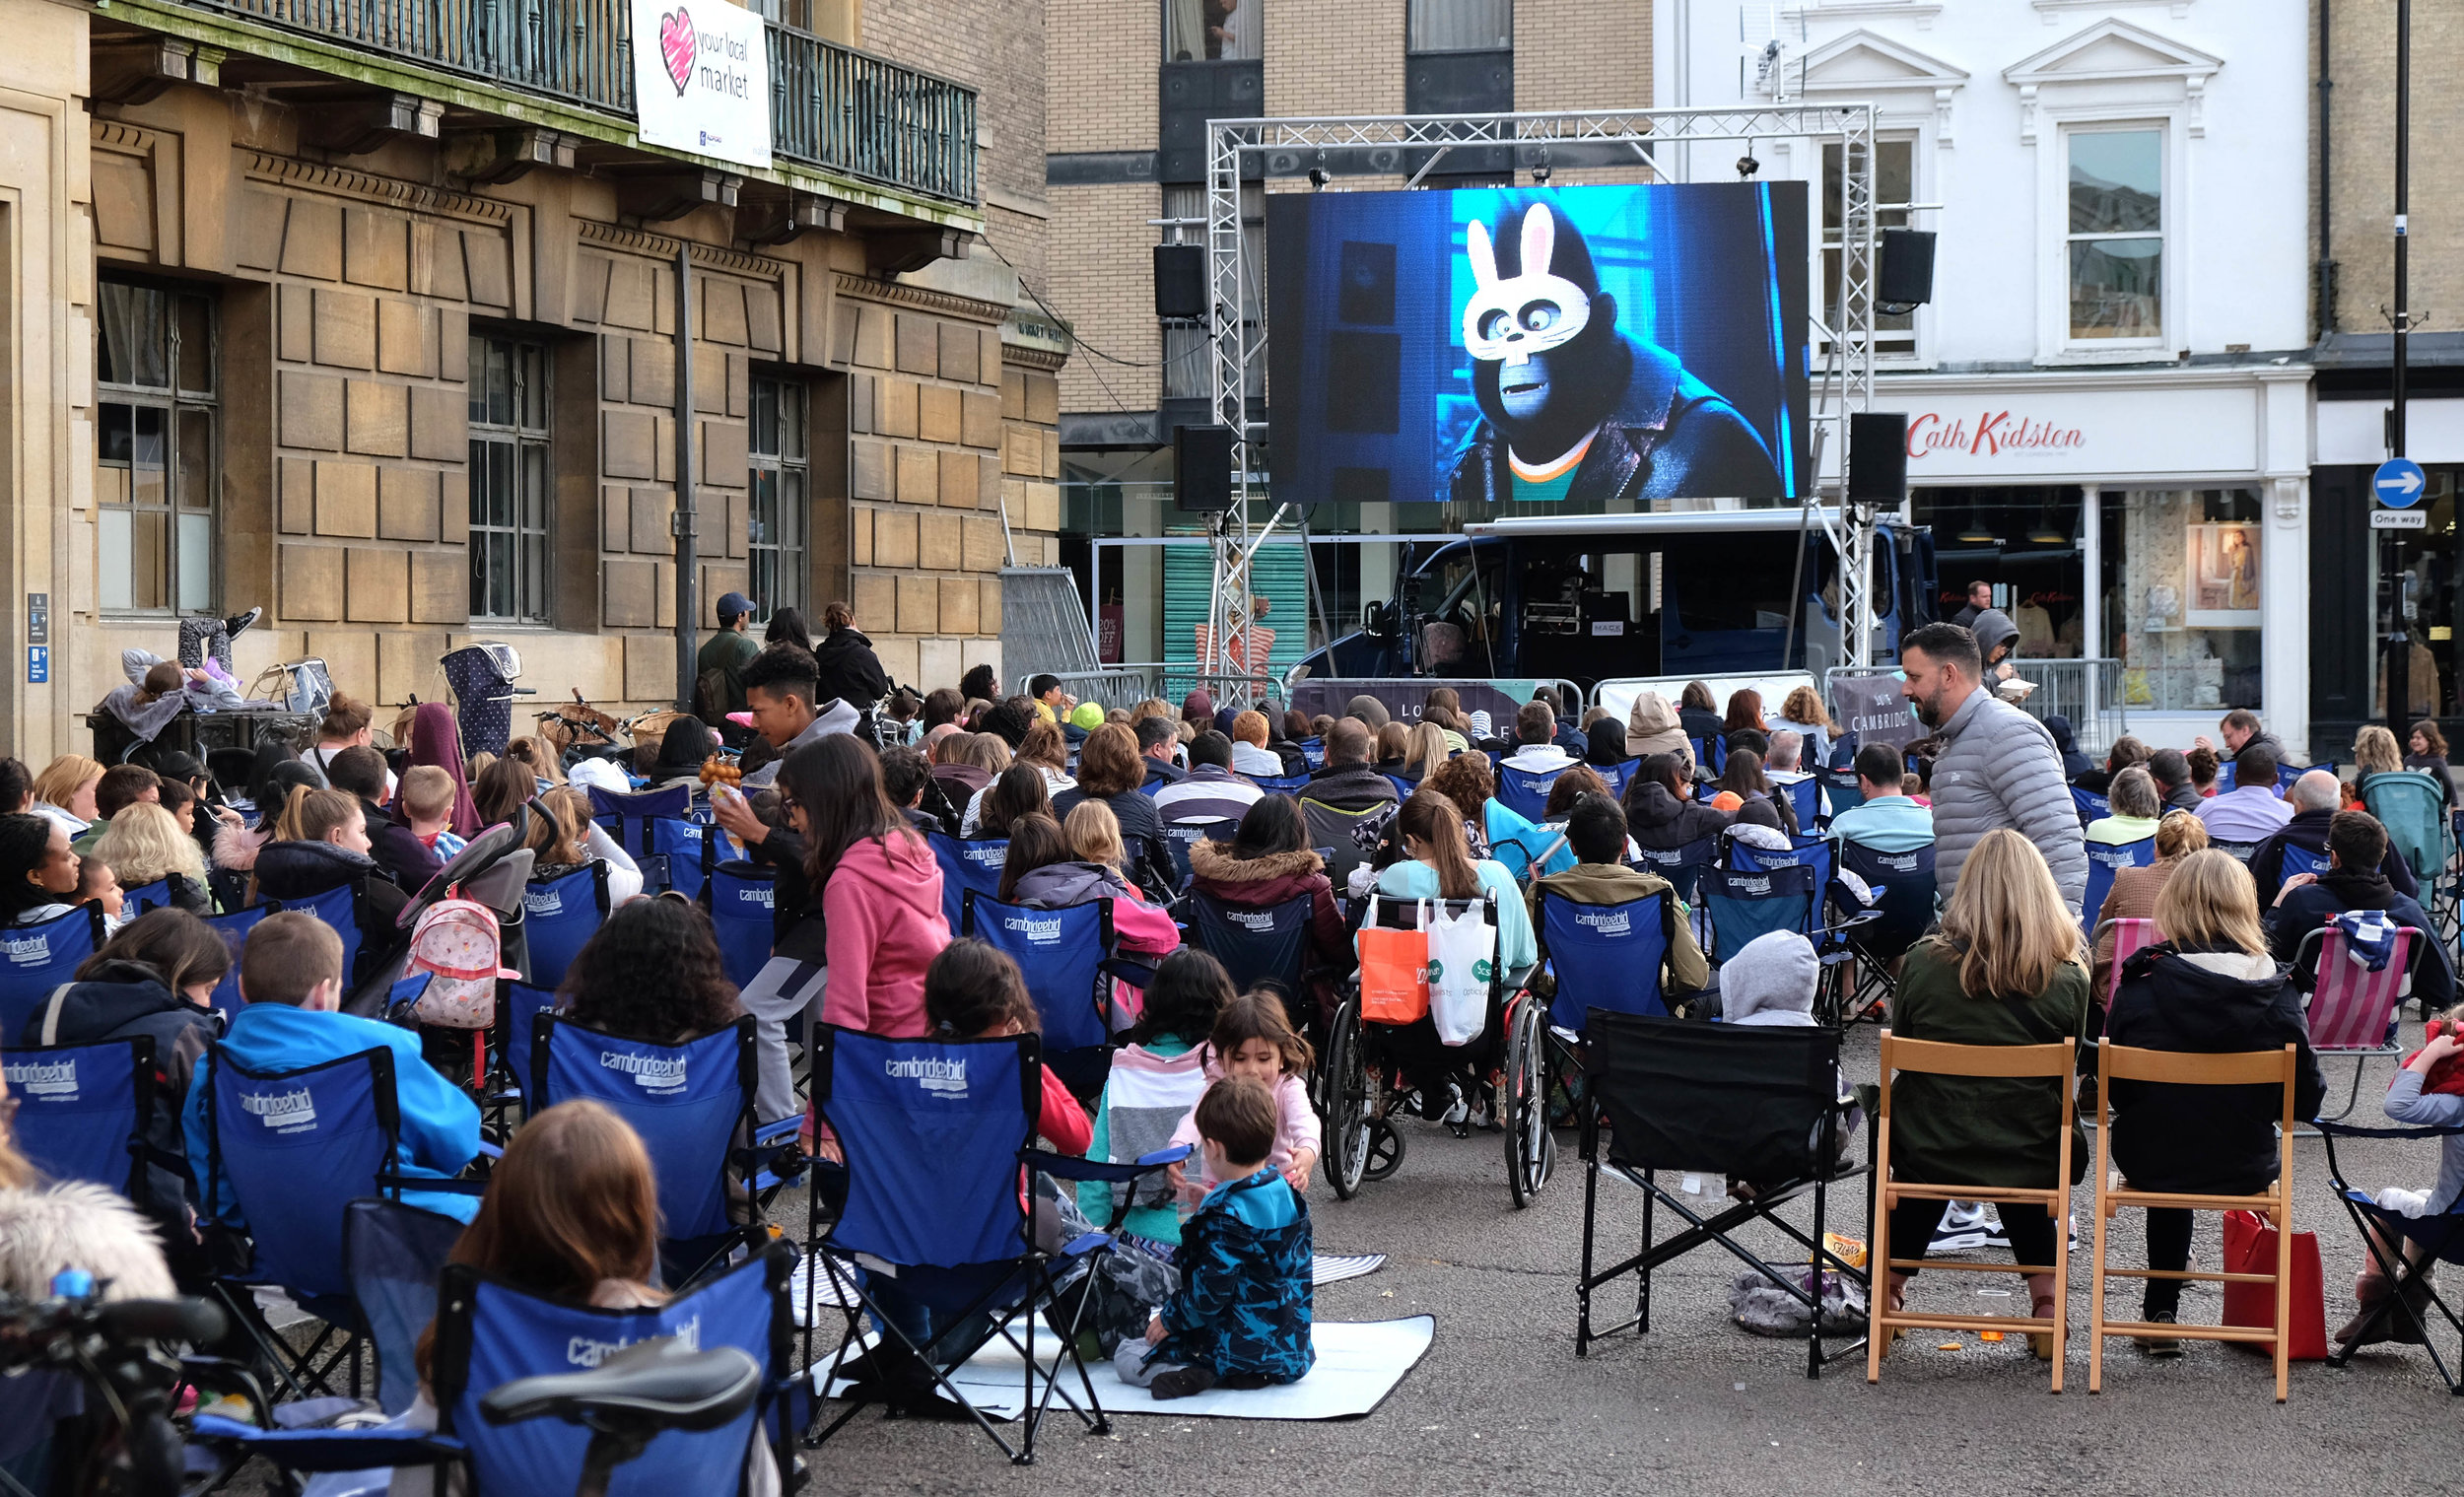 Night Market & Outdoor Cinema   8 fantastic films for you and your family to enjoy   Learn More